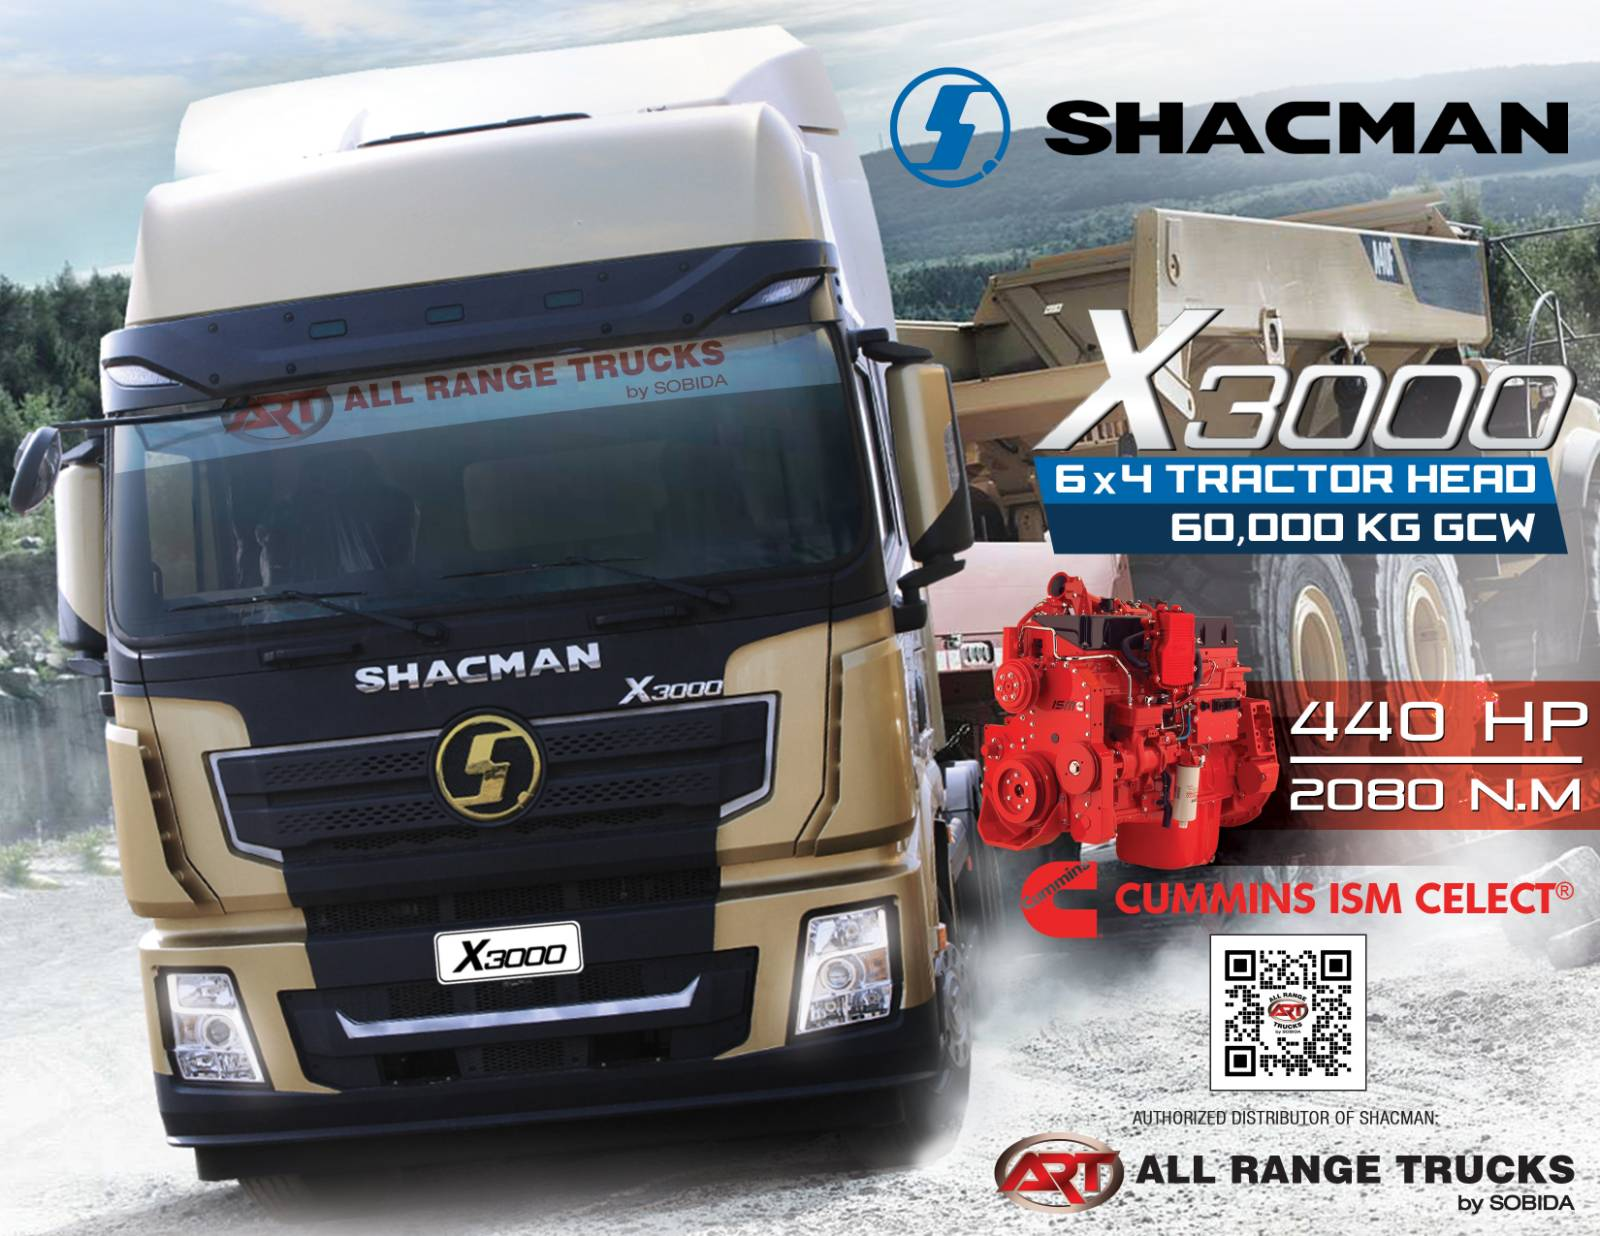 Shacman X3000 Tractor Head 6x4 Prime Mover SX42564W324C 10 wheeler photo